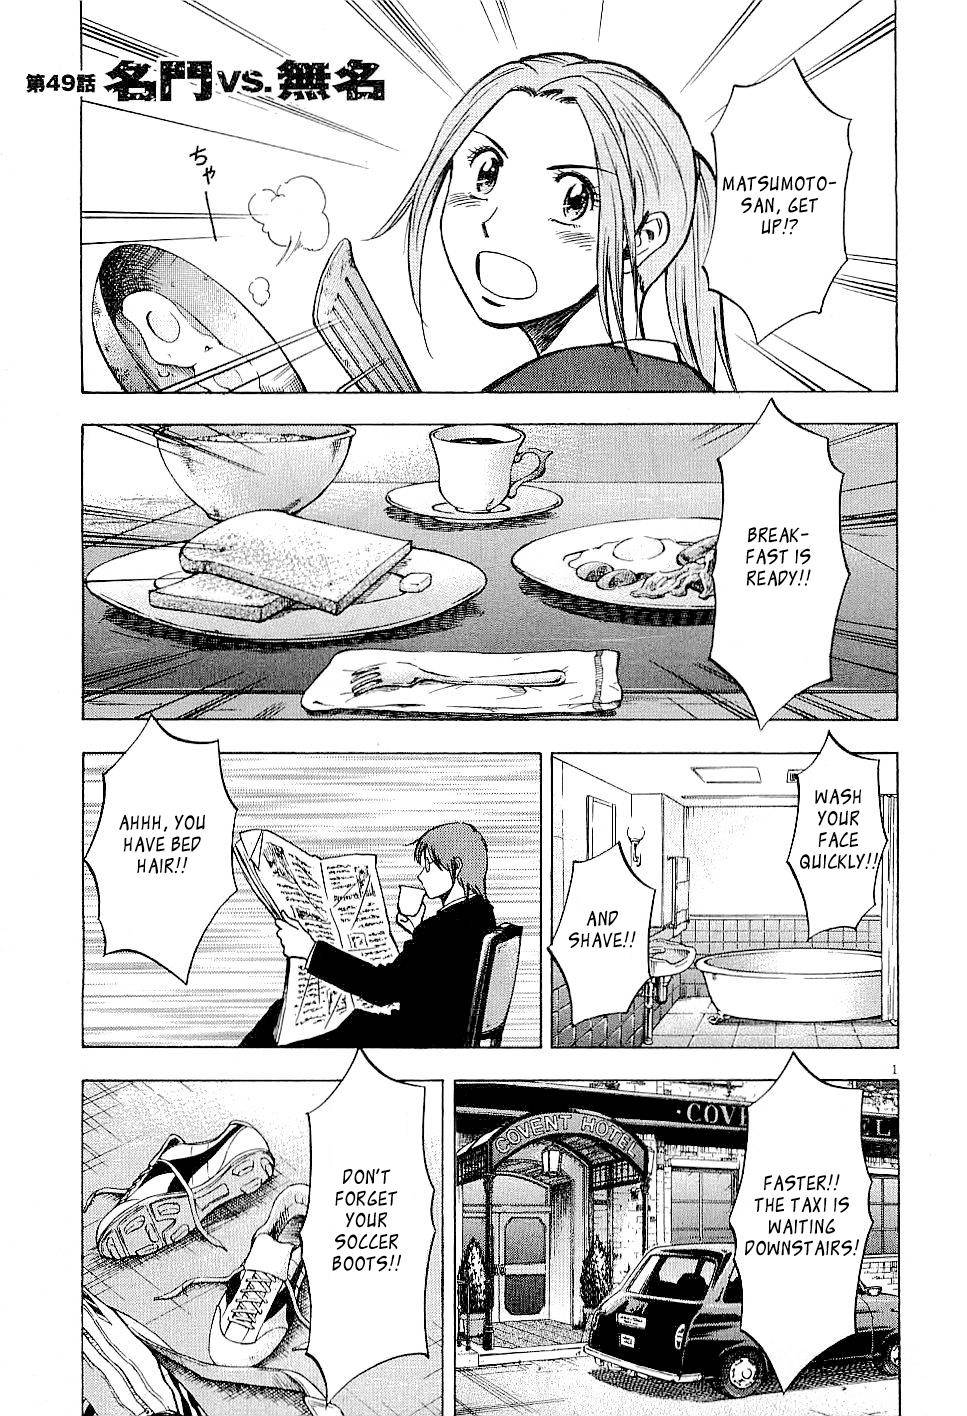 Lost Man - chapter 49 - #1